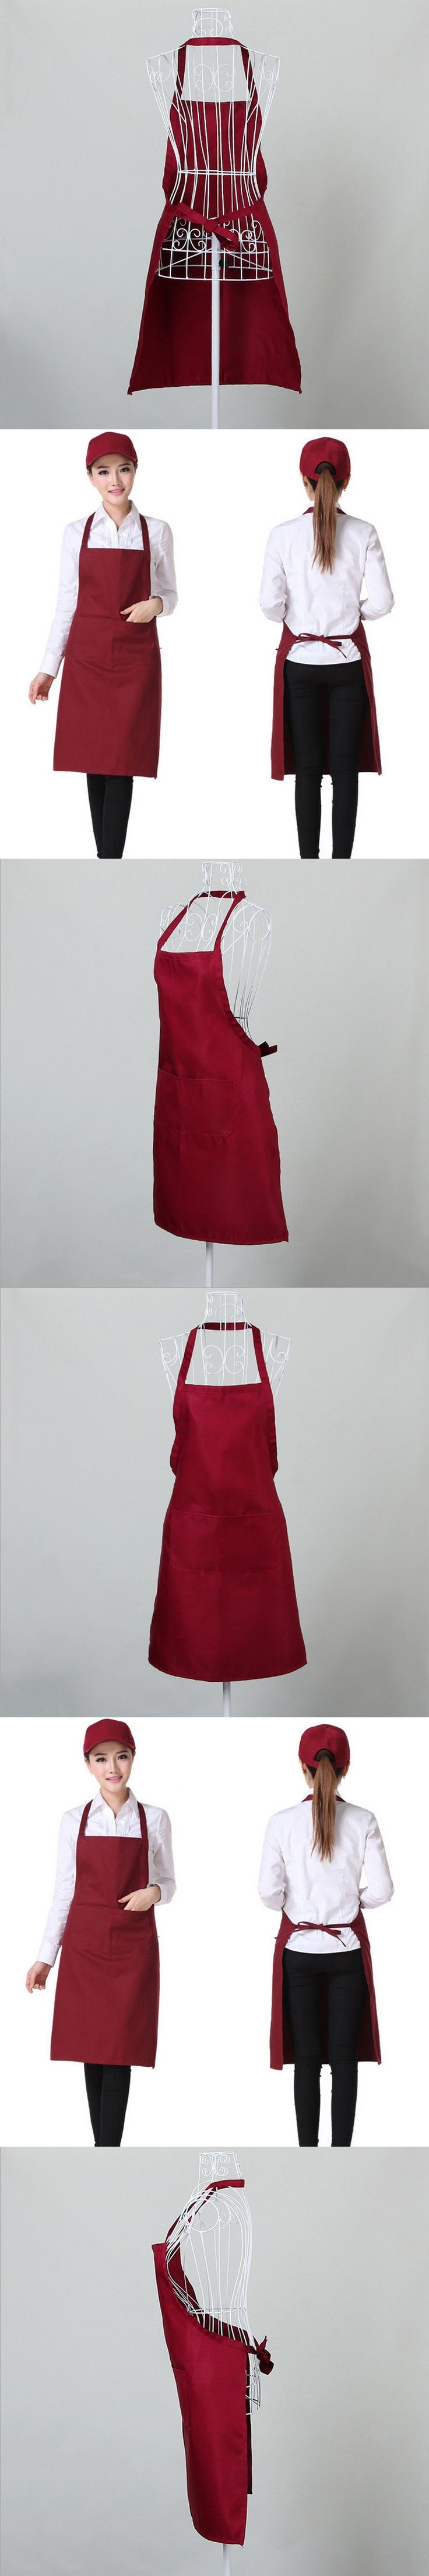 Adult Bib cotton Apron for Home Restaurant BBQ Waiter Chef Apron Kitchen Cooking With 2 Pockets Sleeveless Cooking Work Aprons